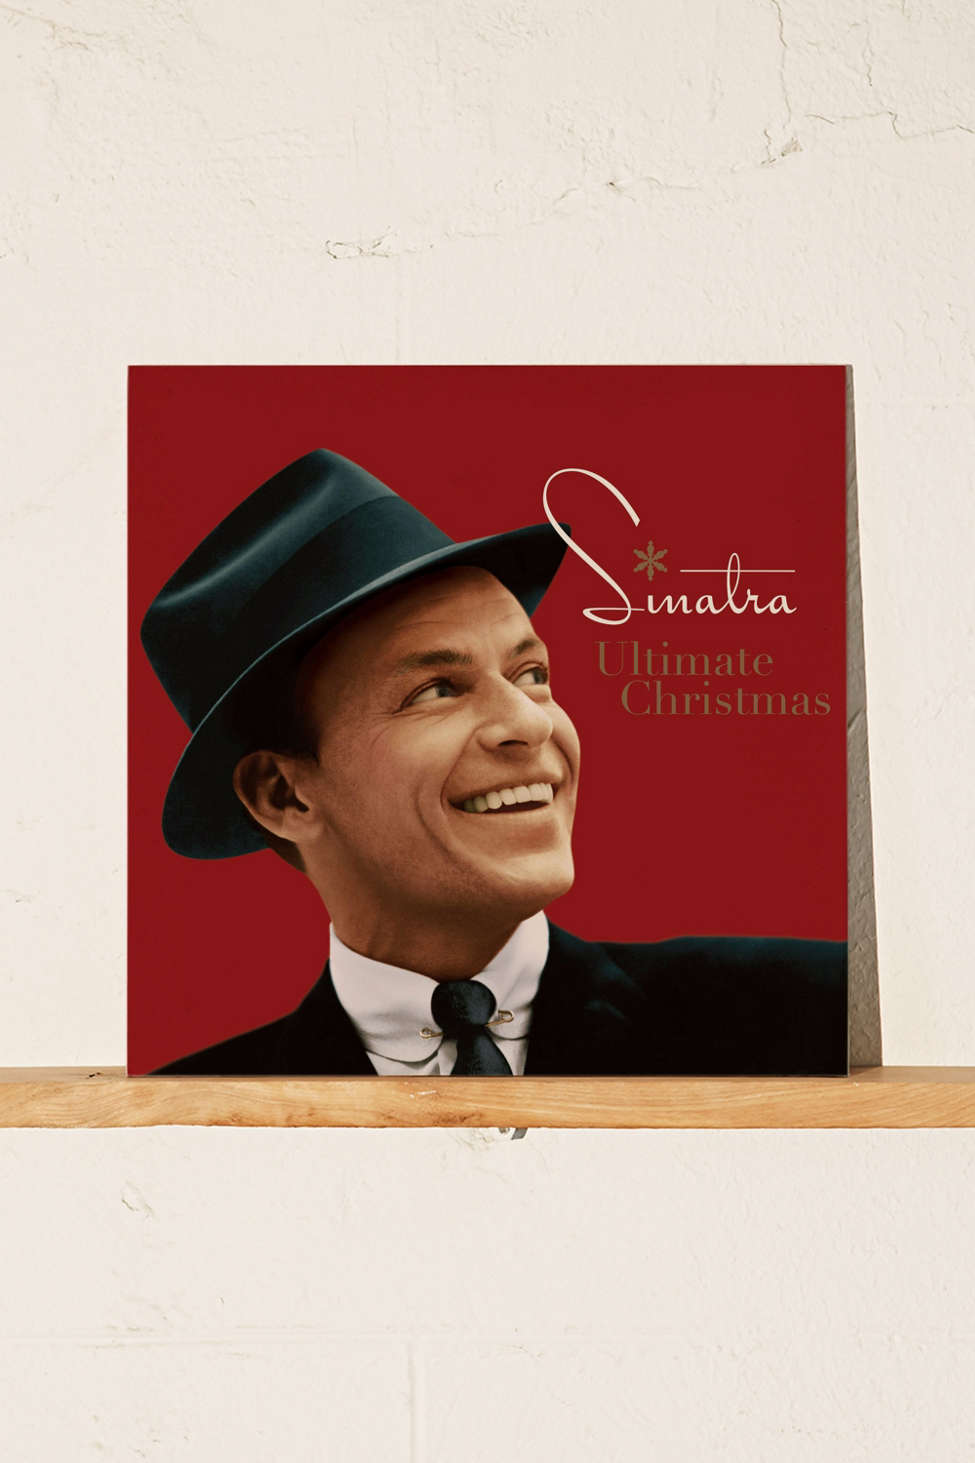 Slide View: 1: Frank Sinatra - Ultimate Christmas 2XLP